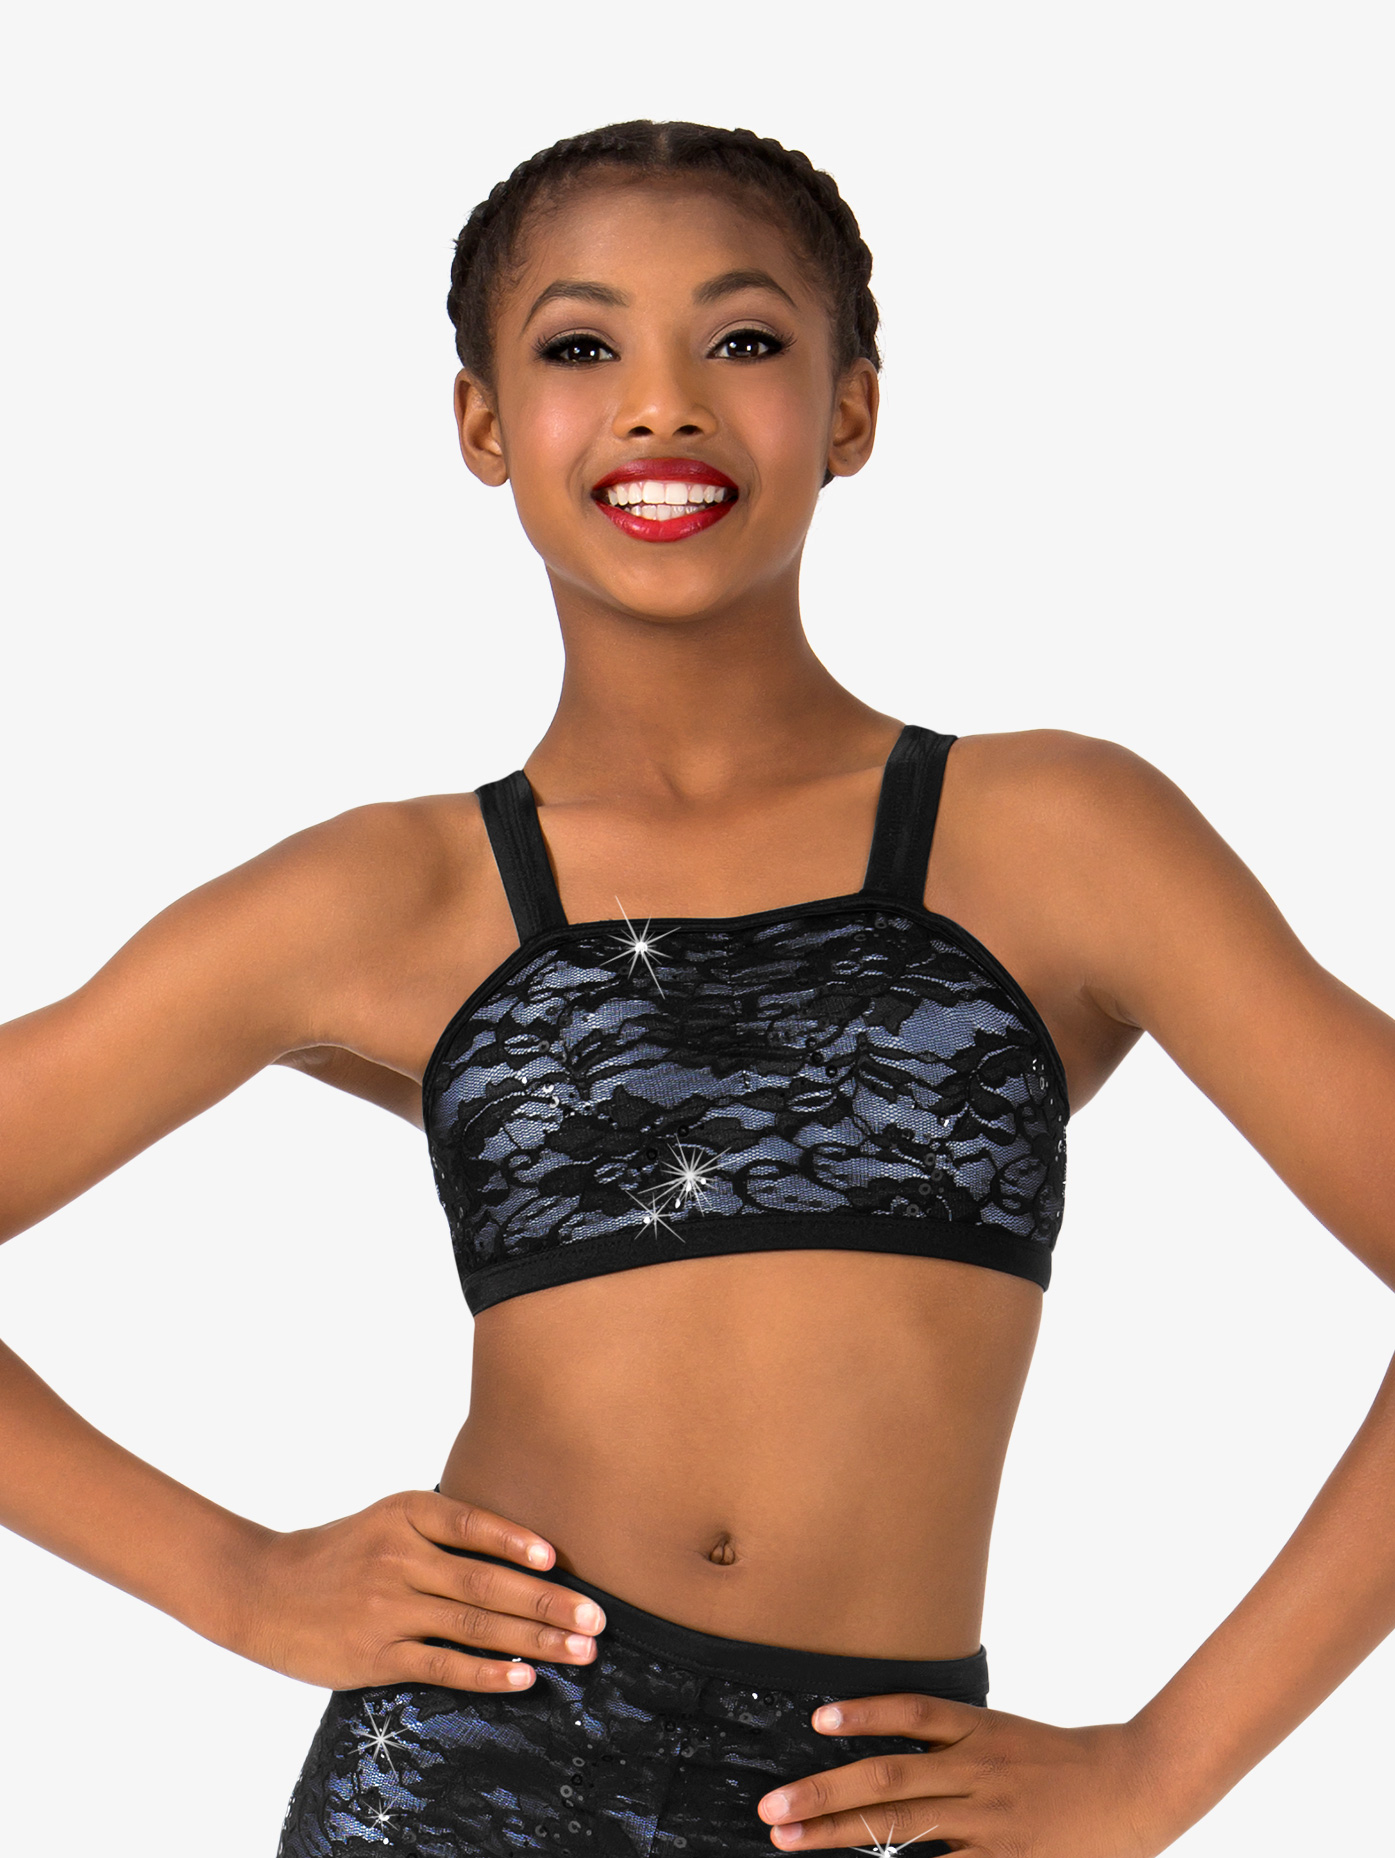 Elisse by Double Platinum Girls Lace Tank Dance Bra Top N7489C